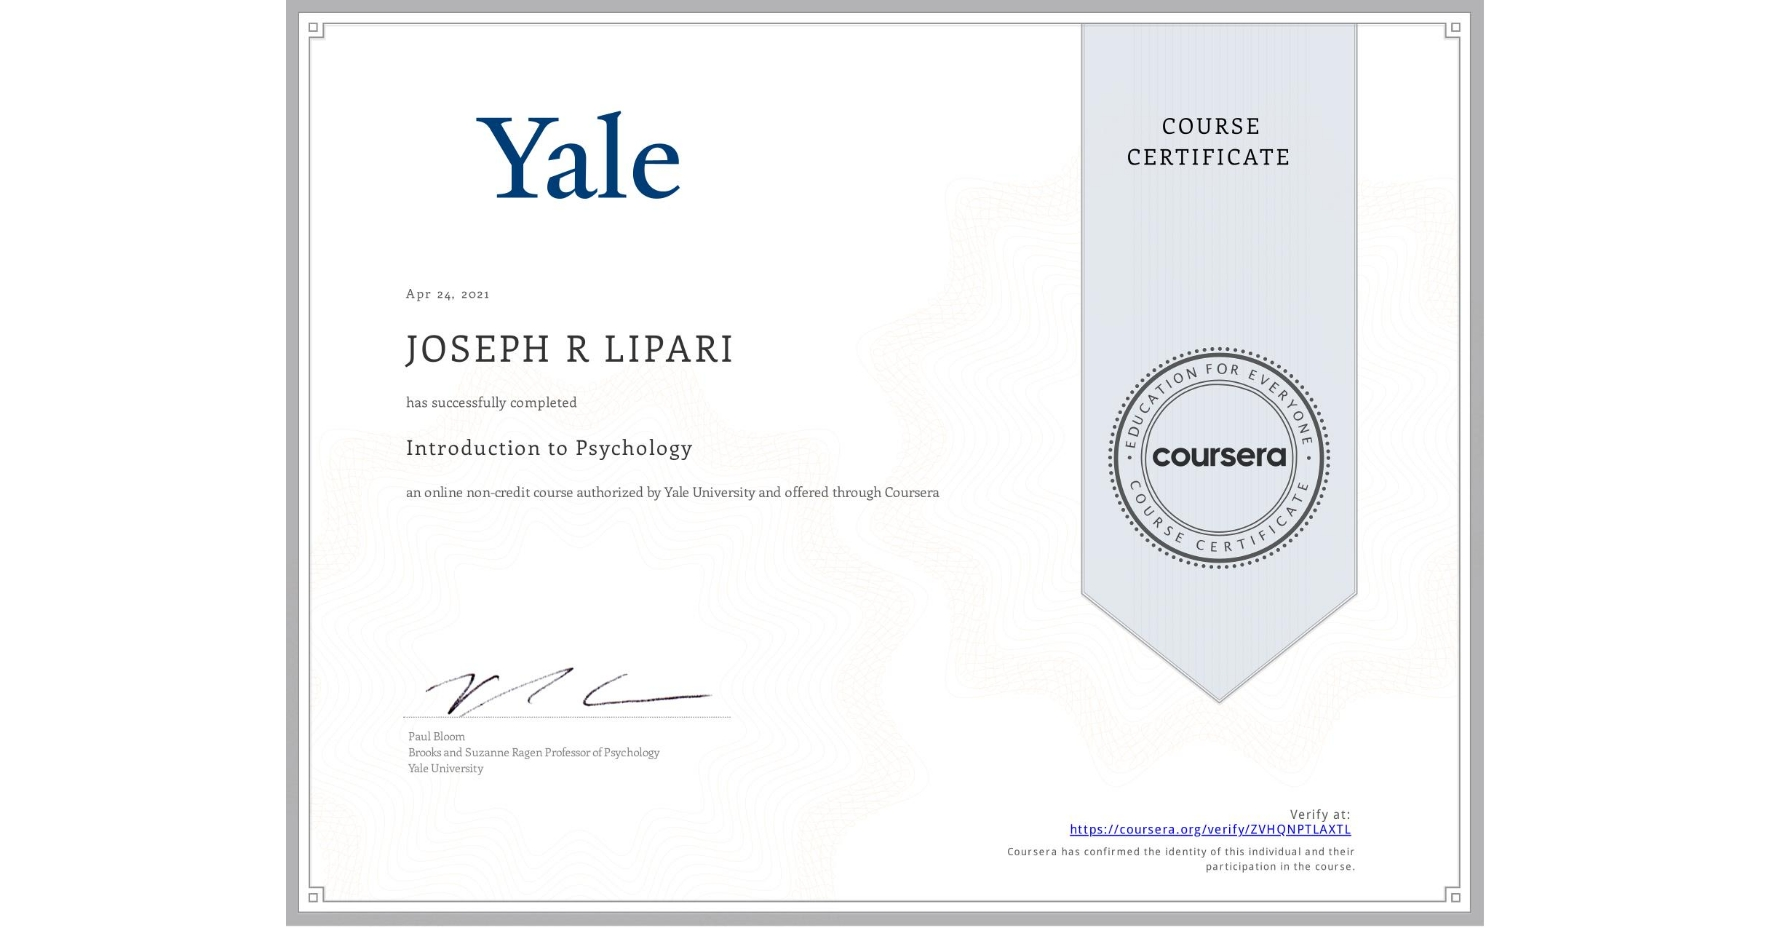 View certificate for JOSEPH R  LIPARI, Introduction to Psychology , an online non-credit course authorized by Yale University and offered through Coursera